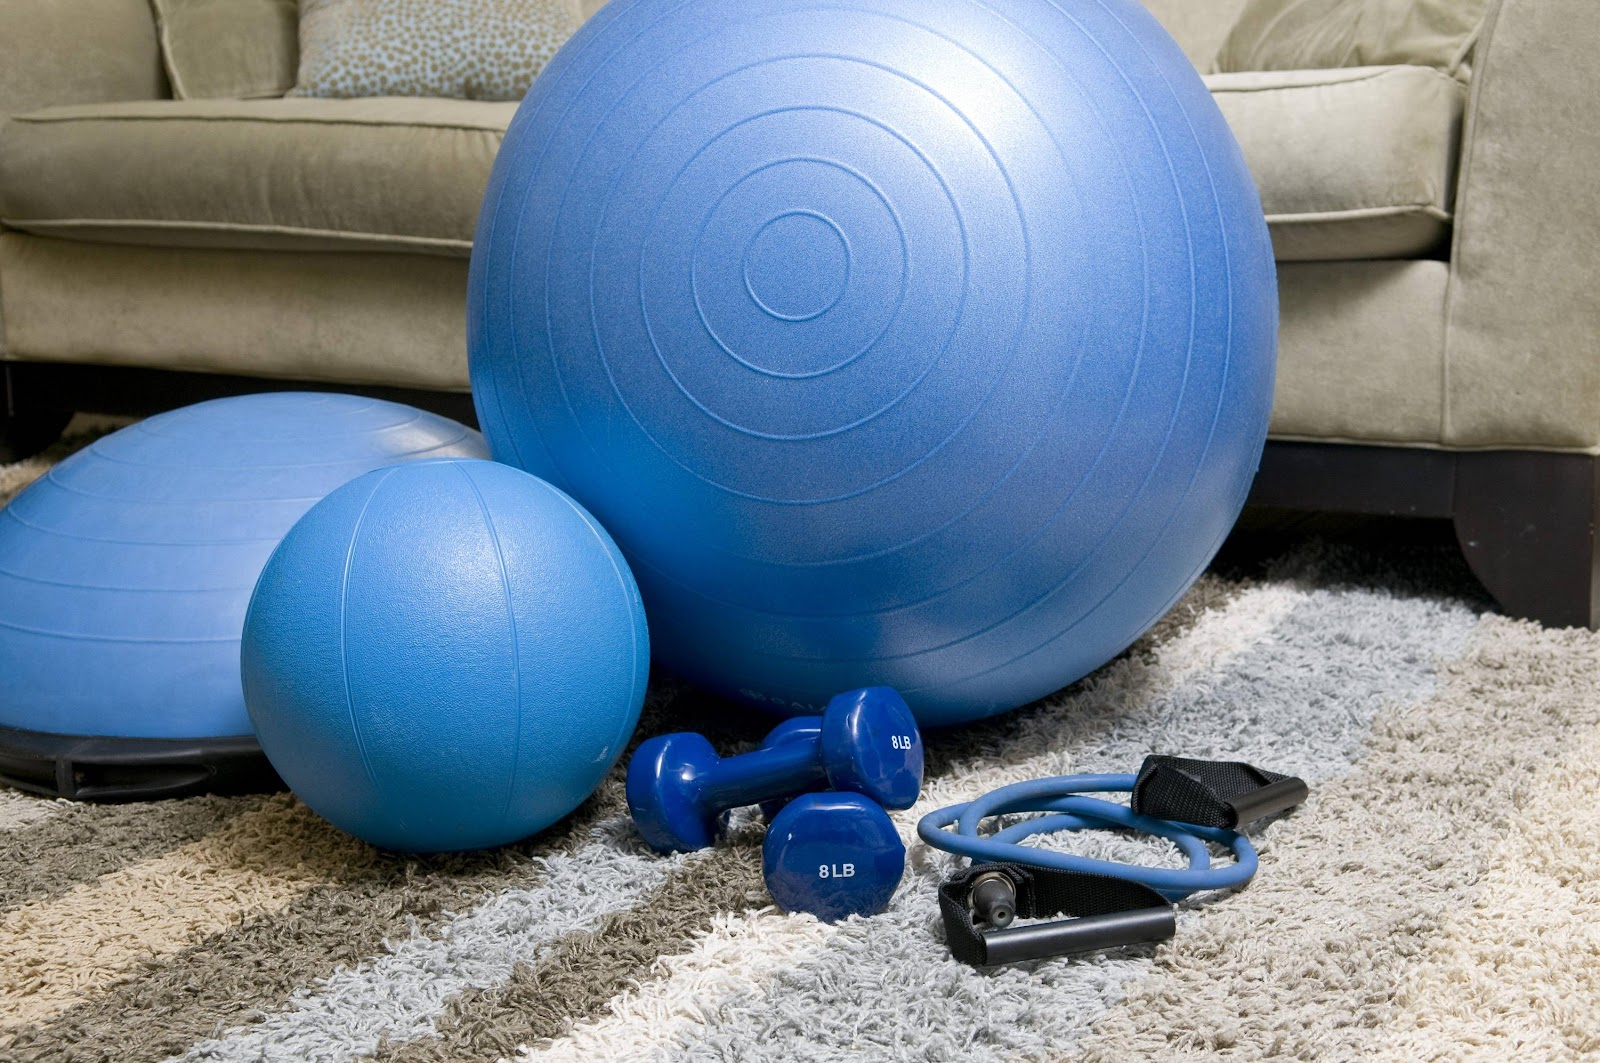 Exercise equipment next to the couch